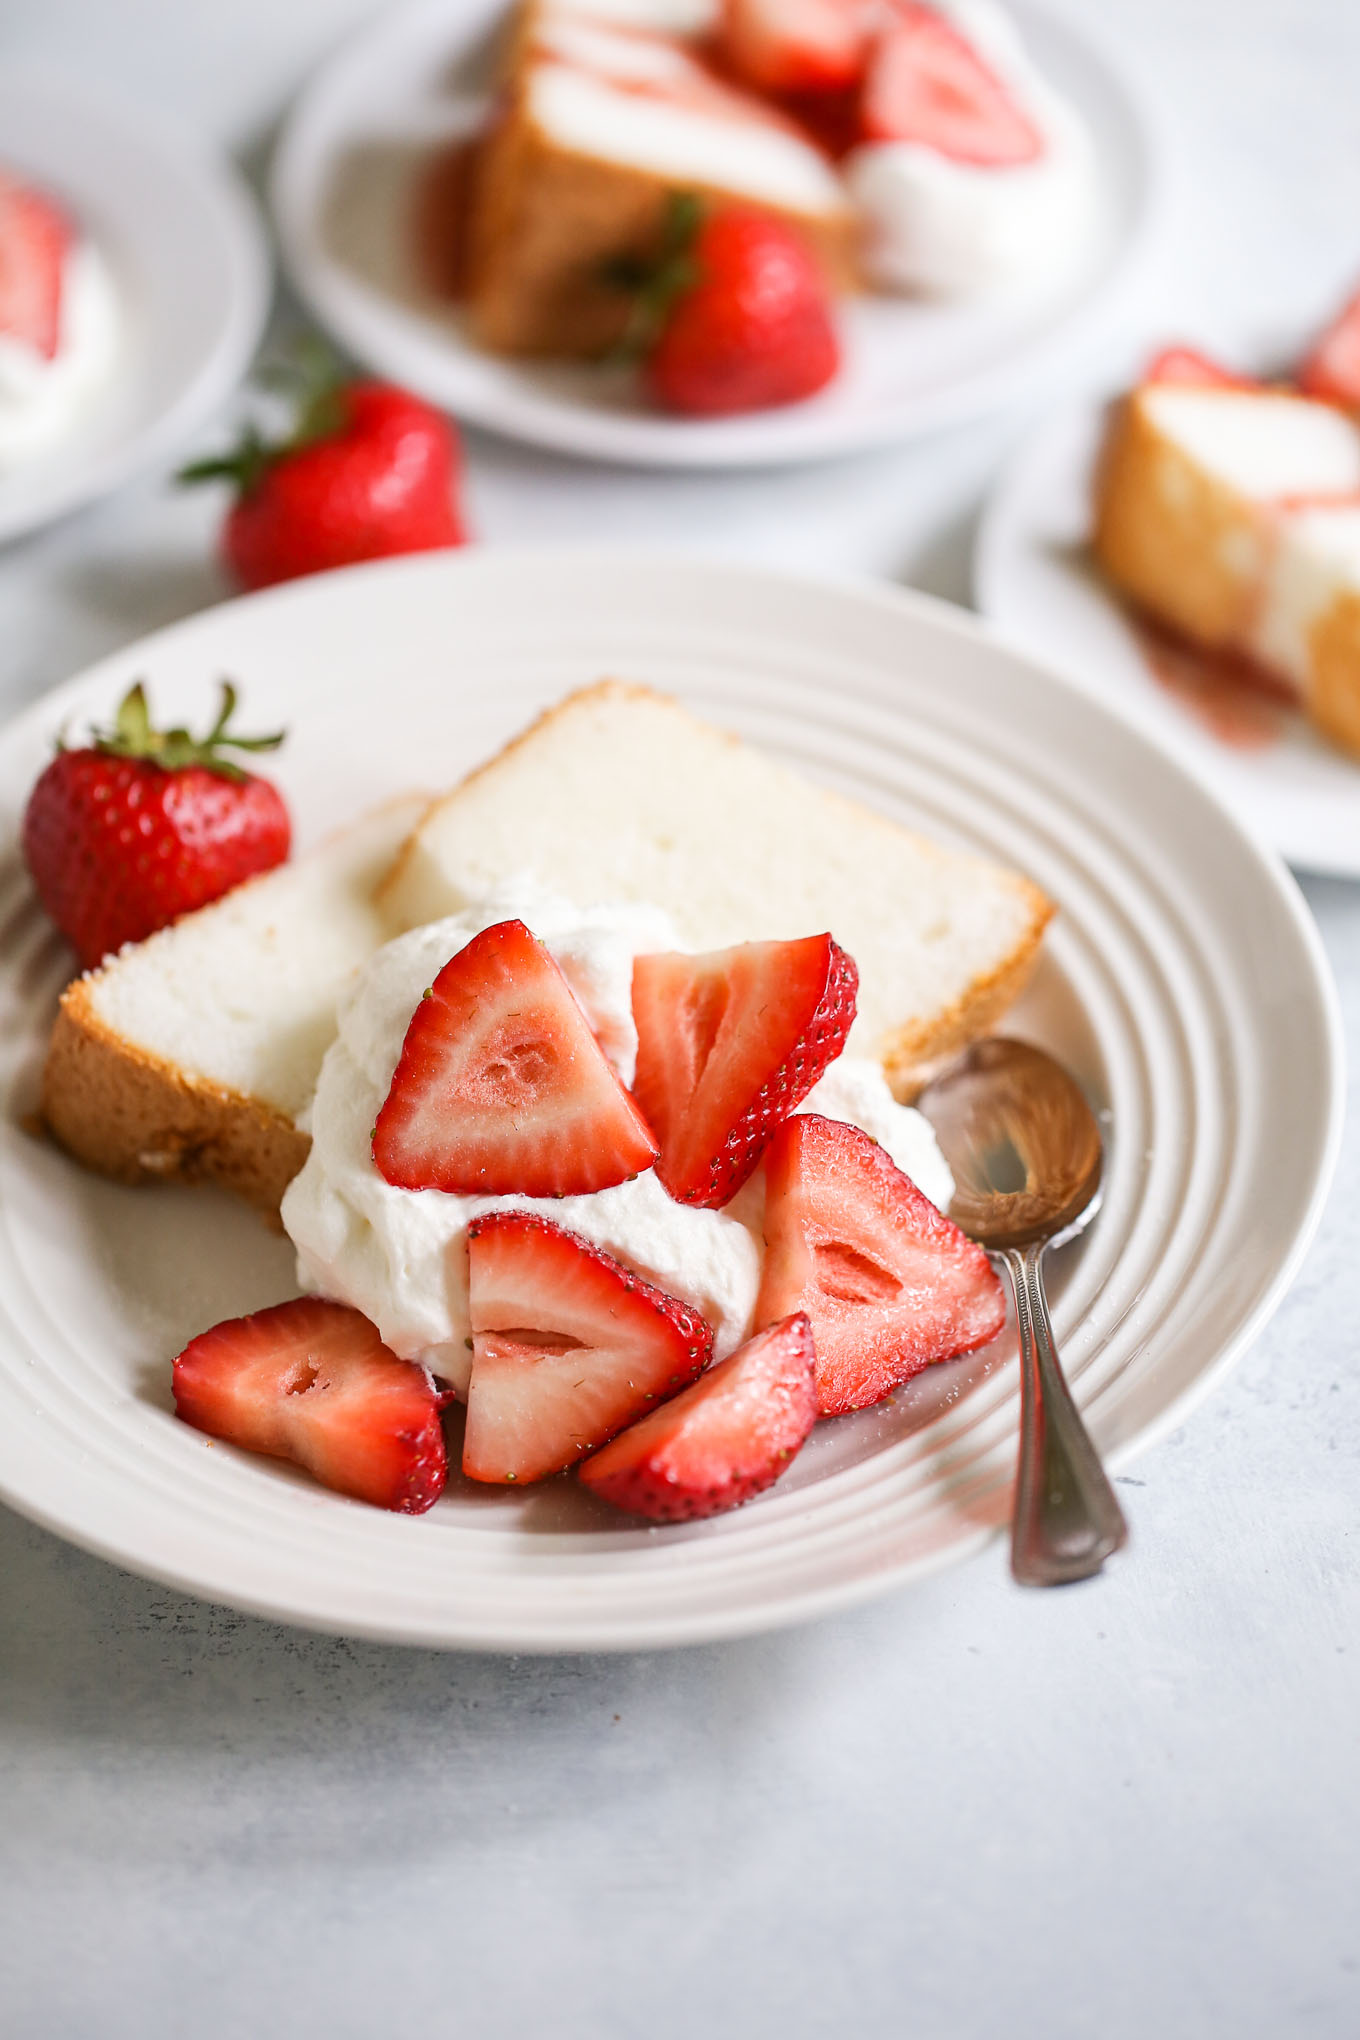 Strawberry shortcakes made with angel food cake, fresh strawberries, and whipped cream